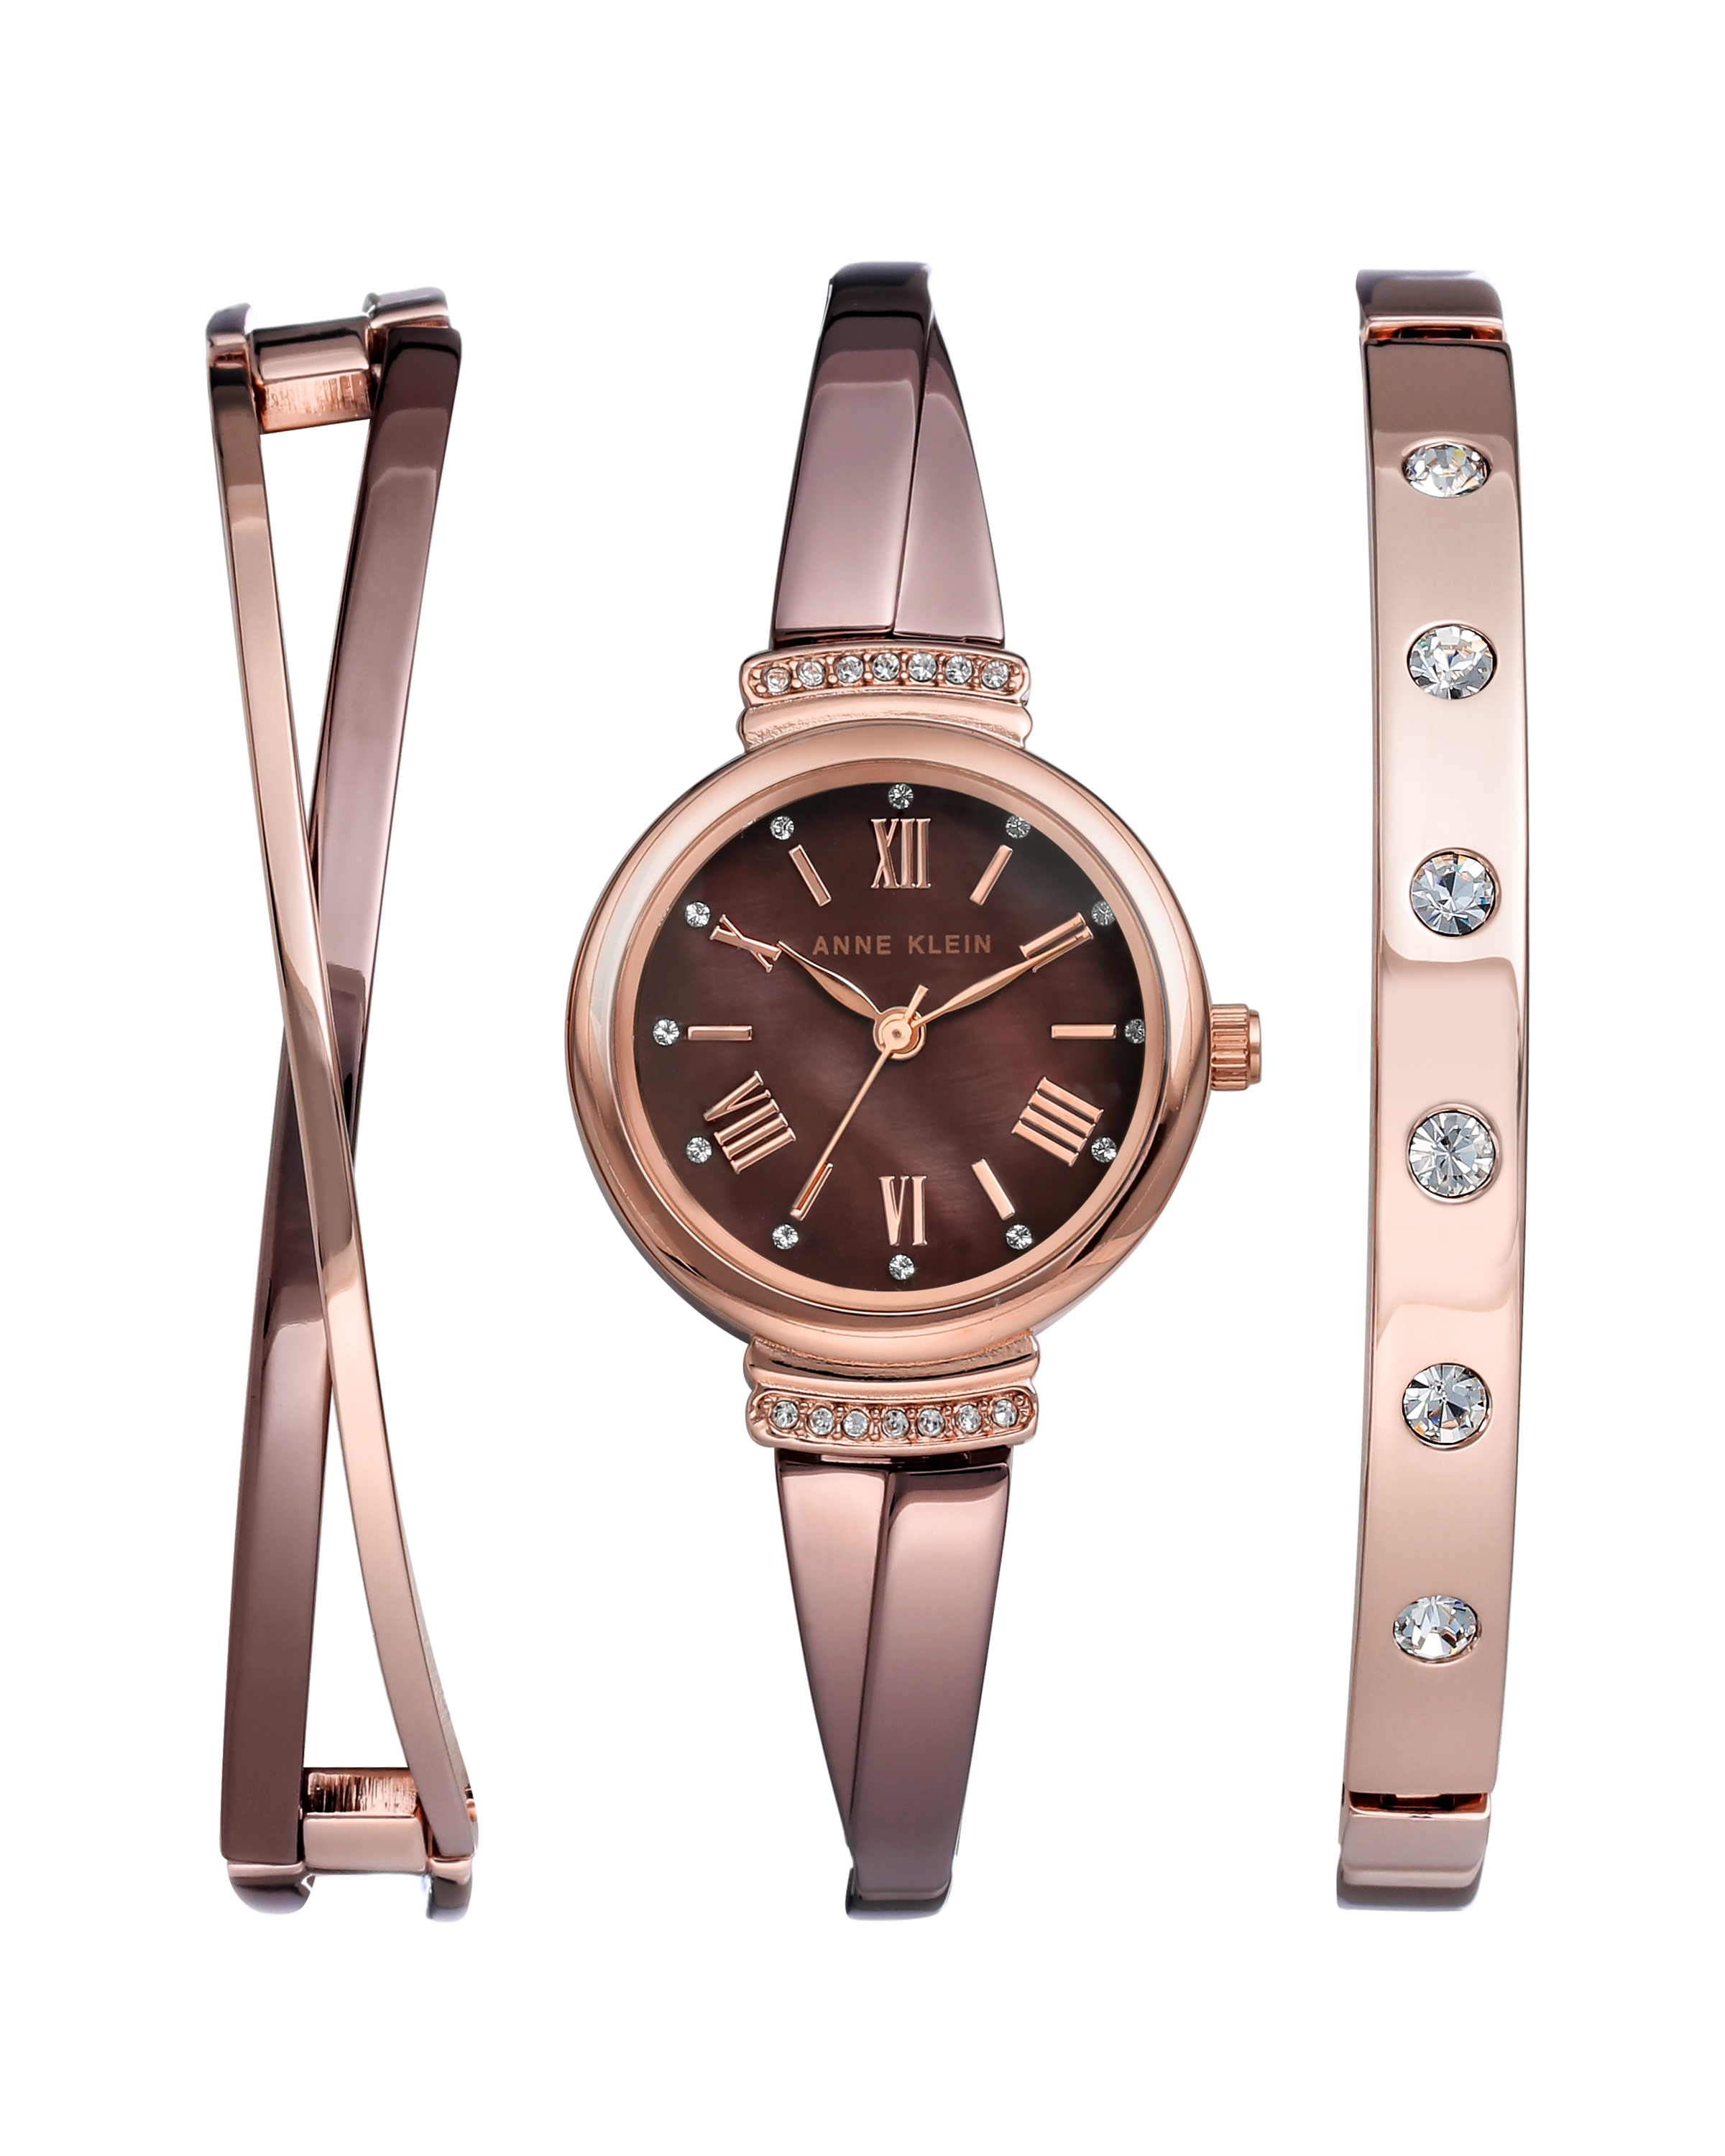 5 top fashion designer watches for under 300 that ladies need now watch seduction for Watches under 300